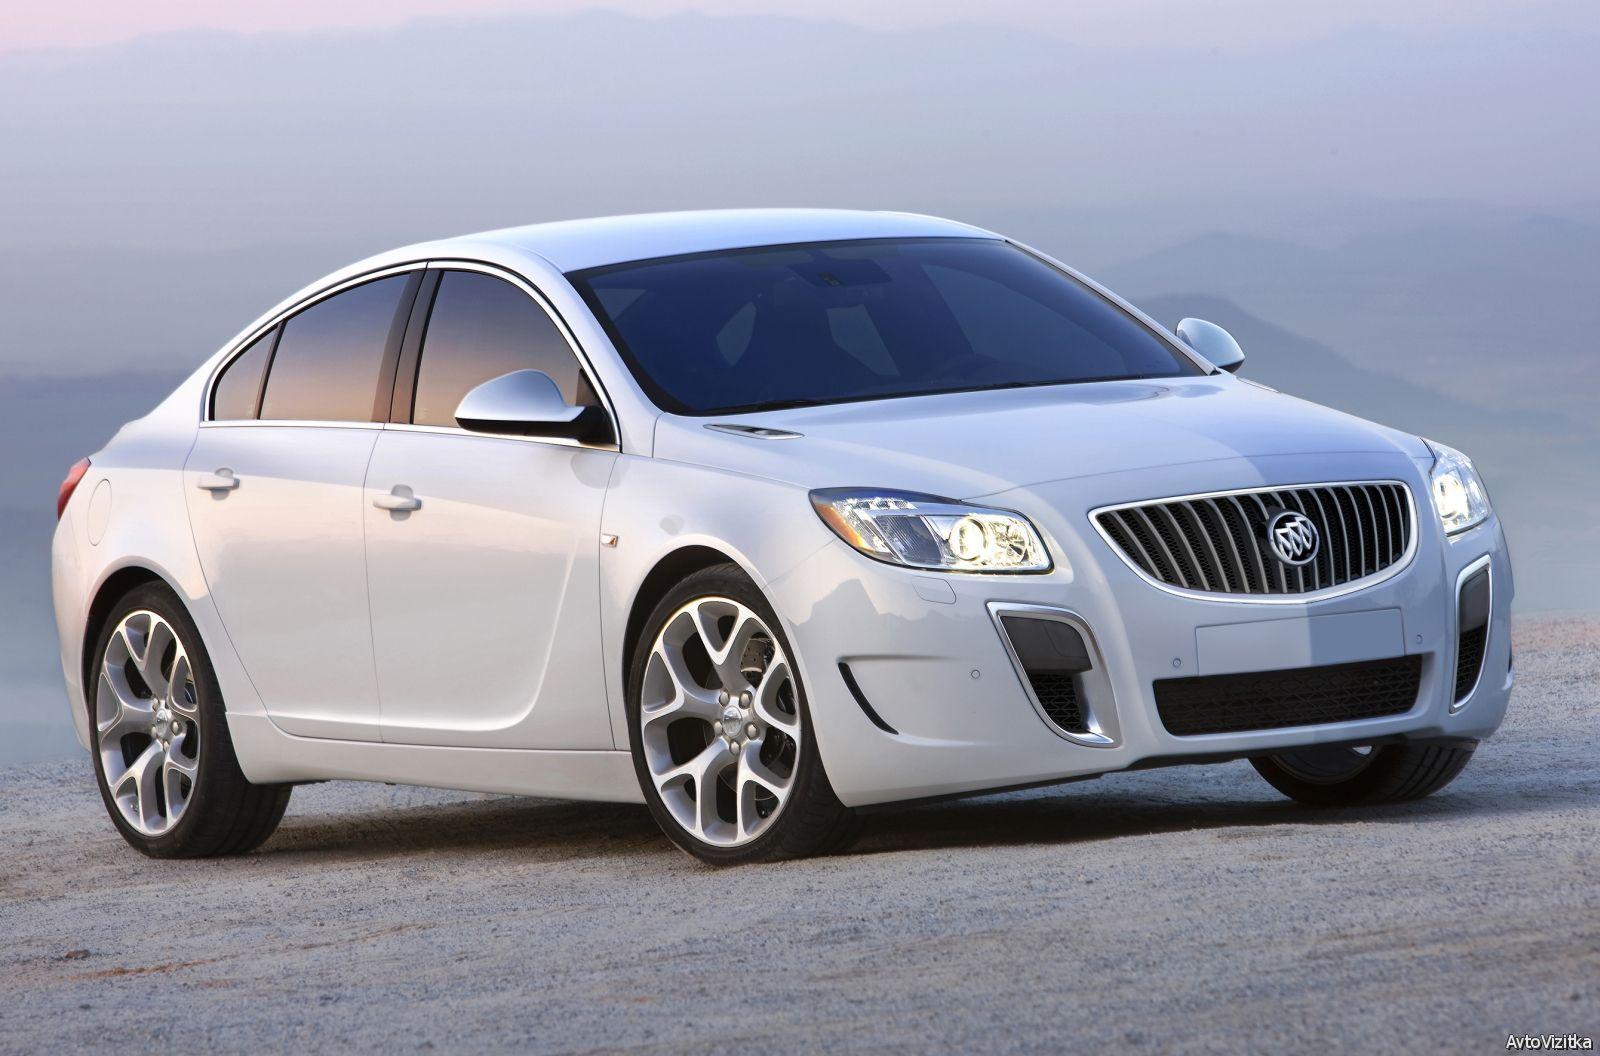 2016 Buick Regal Specs Release Date And Price 2016 2017 Car Reviews Buick Regal Gs Buick Regal Buick Cars